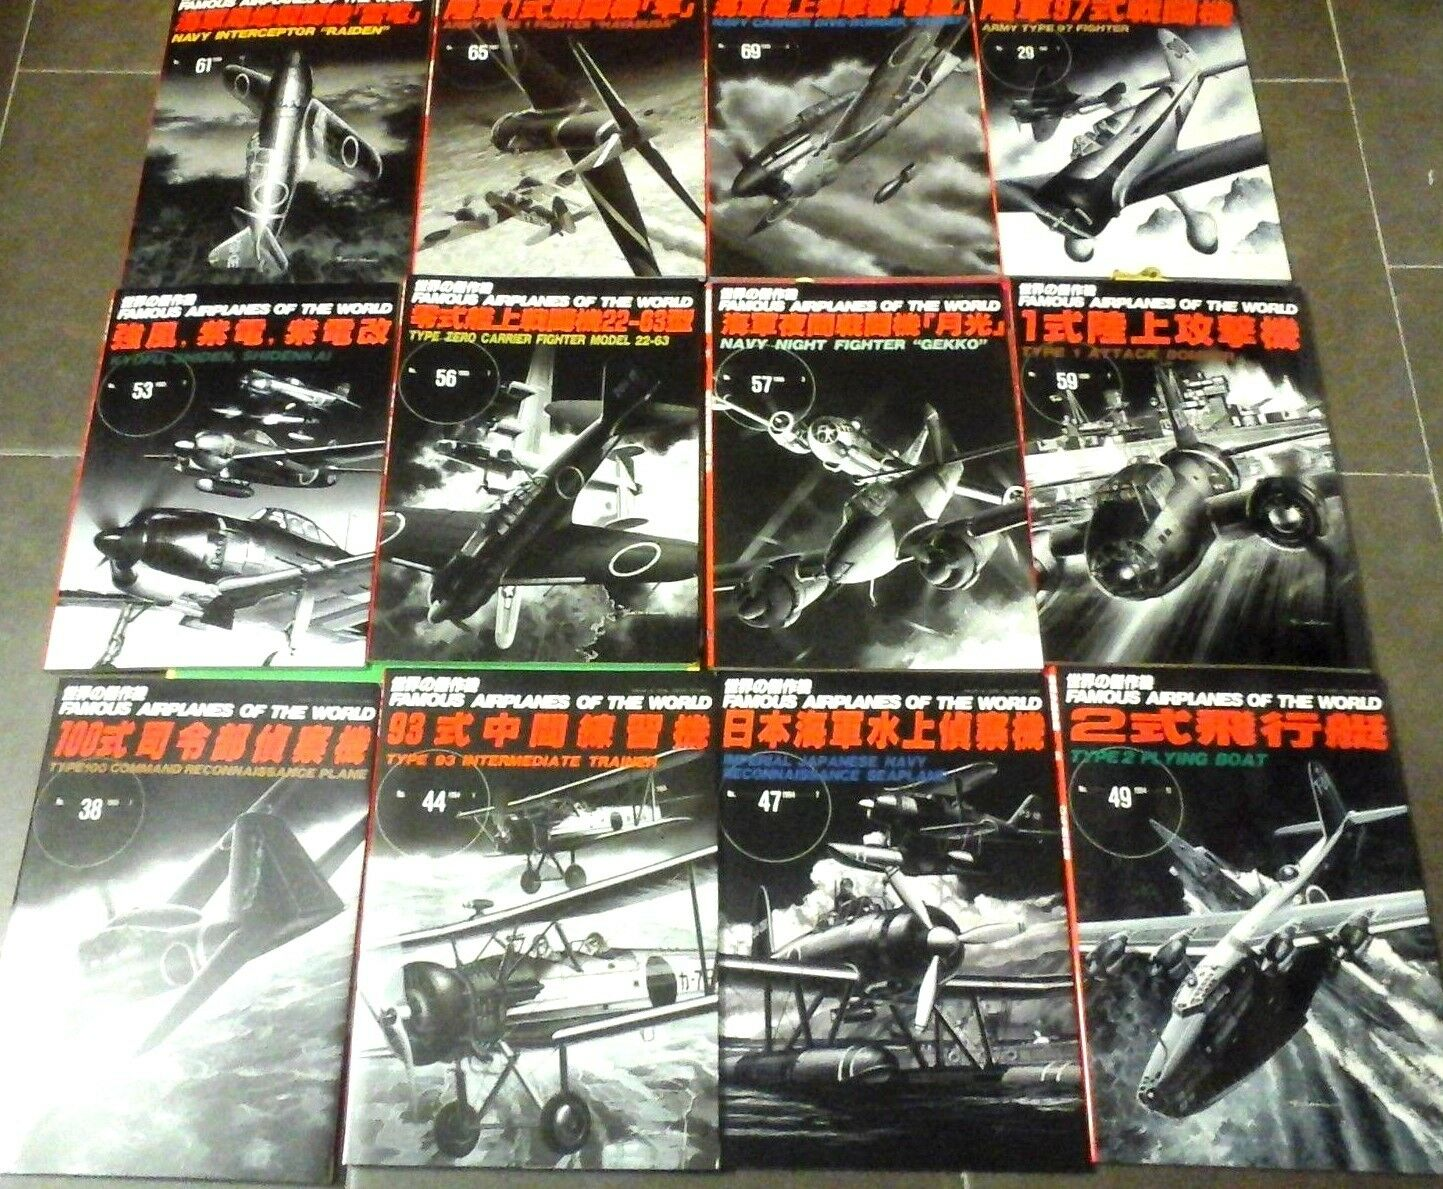 FAMOUS AIRPLANES OF THE WORLD-LOT OF TWENTY-FIVE libroS-BURIN DO Ltd  PUBLISHING J  vendita scontata online di factory outlet